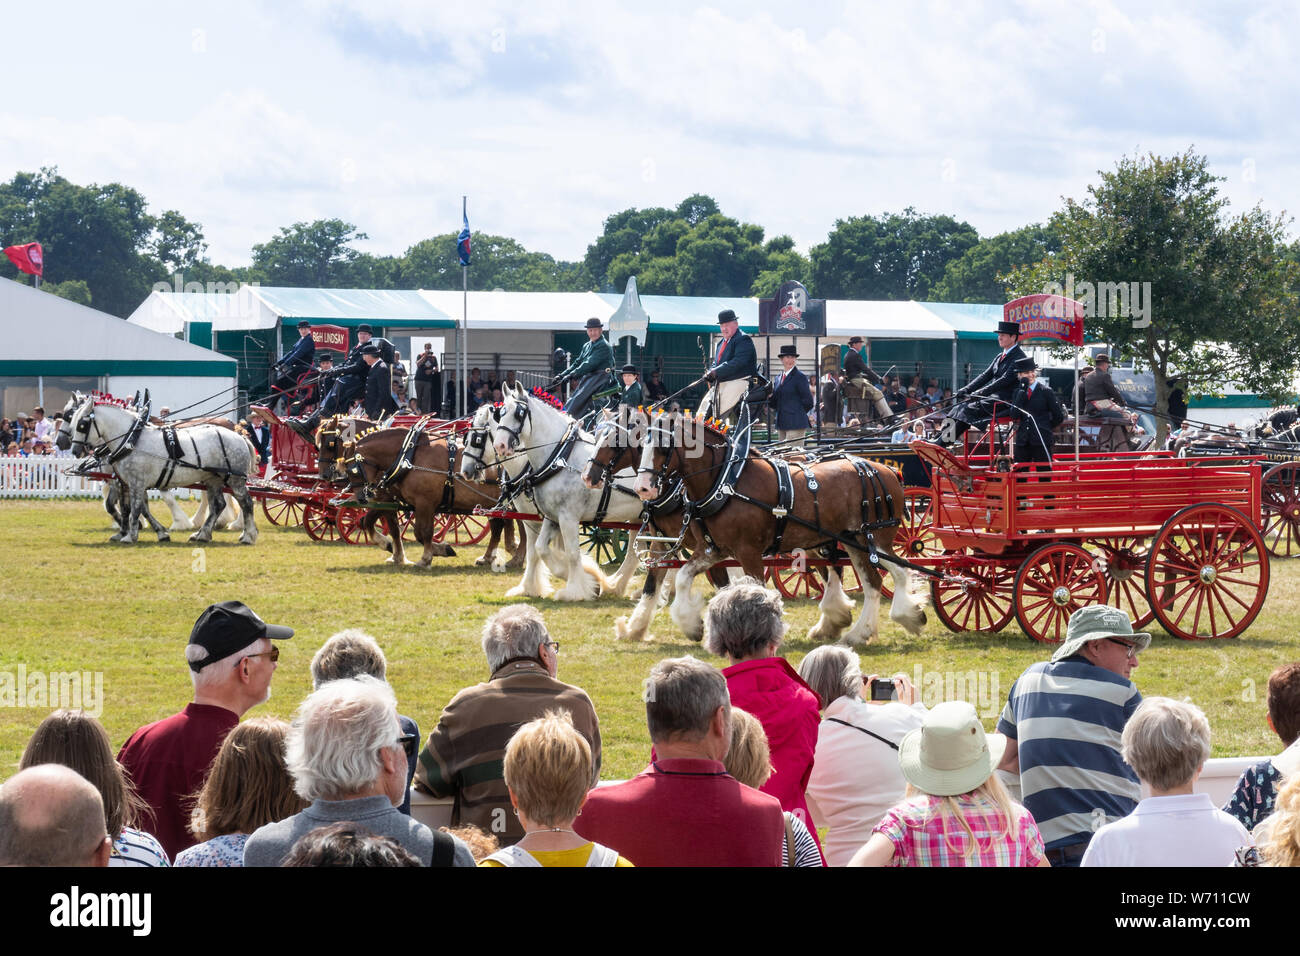 new-forest-and-hampshire-county-show-2019-the-heavy-horse-musical-parade-taking-place-in-the-main-arena-W711CW.jpg